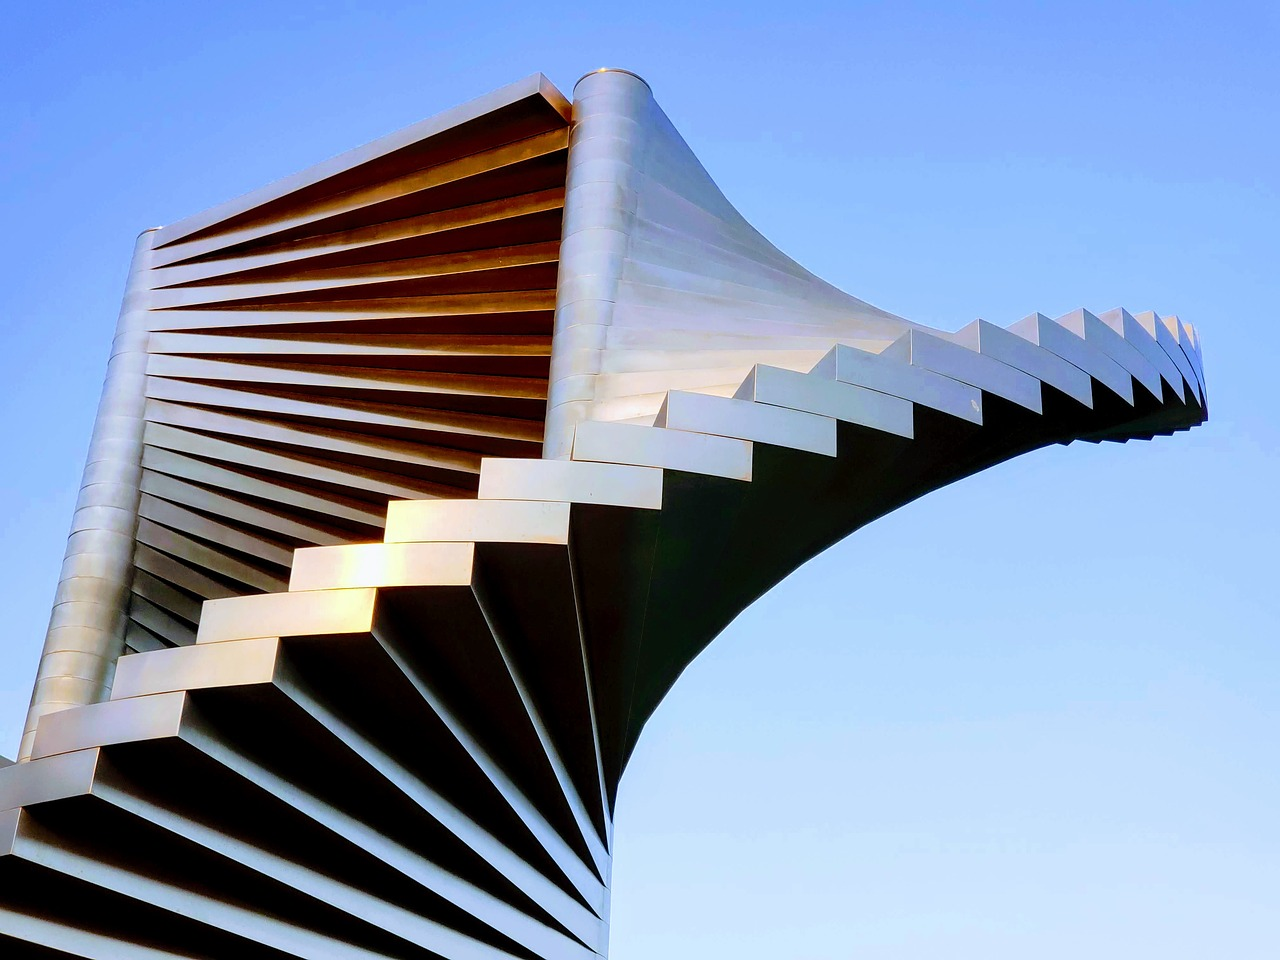 stairway-to-heaven-3692368_1280